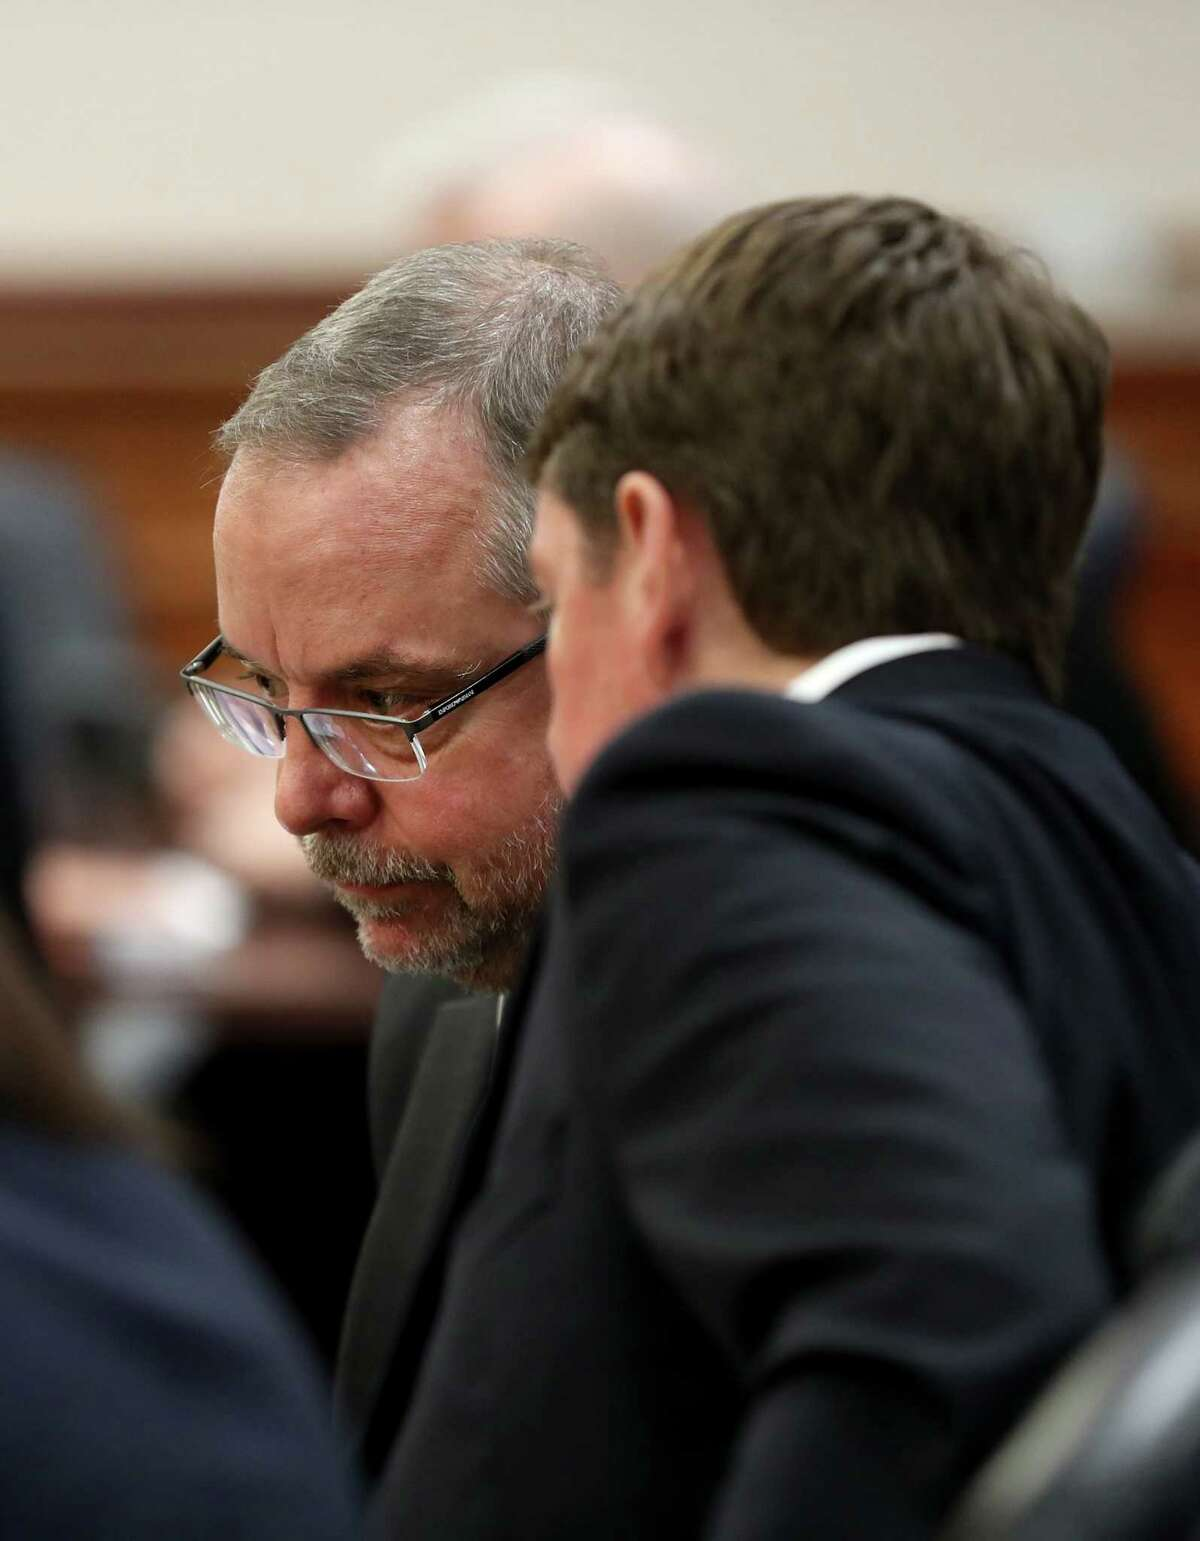 Galveston County Criminal District Attorney Jack Roady talks with First Assistant District Attorney Kevin Petroff at the Galveston County Courthouse on Monday, Jan. 28, 2019, before a status conference for Dimitrios Pagourtzis, the student accused of killing 10 people in a May 18 shooting at Santa Fe High School. Pagourtzis' attorneys have filed a motion for a change of venue.